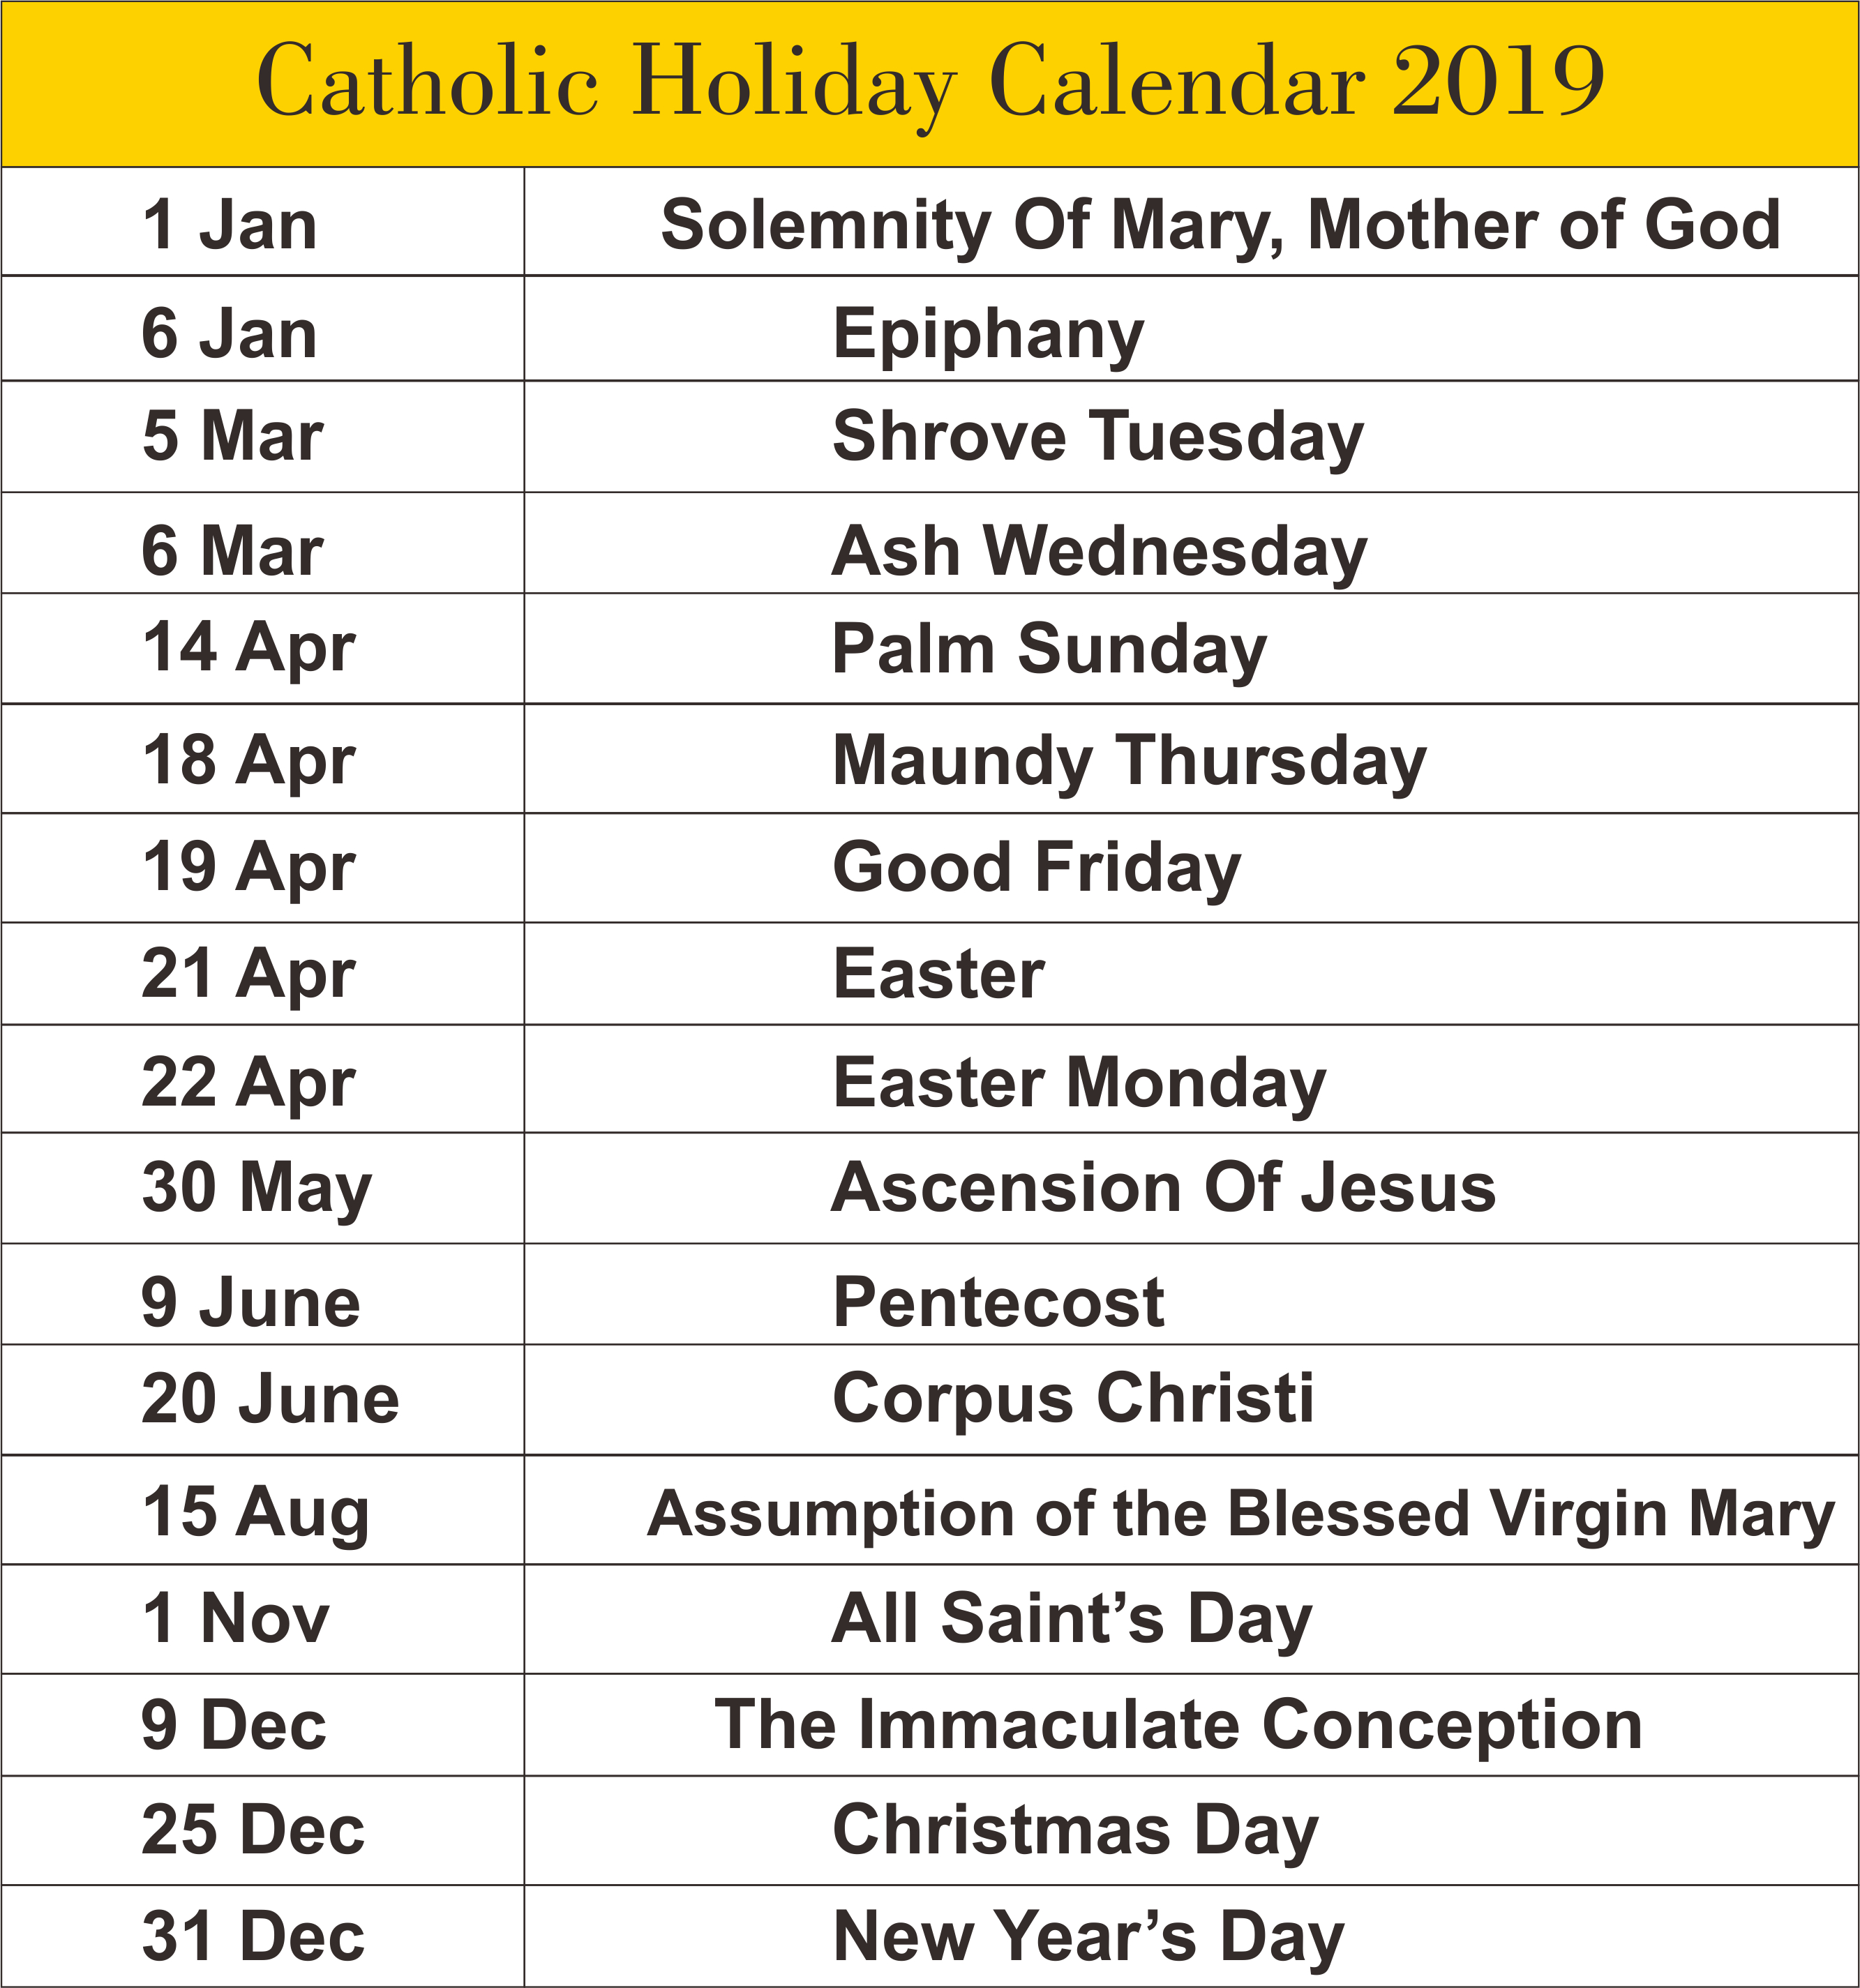 Free Editable Printable Catholic Calendar Template 2019 | Printable Calendar 2019 Catholic